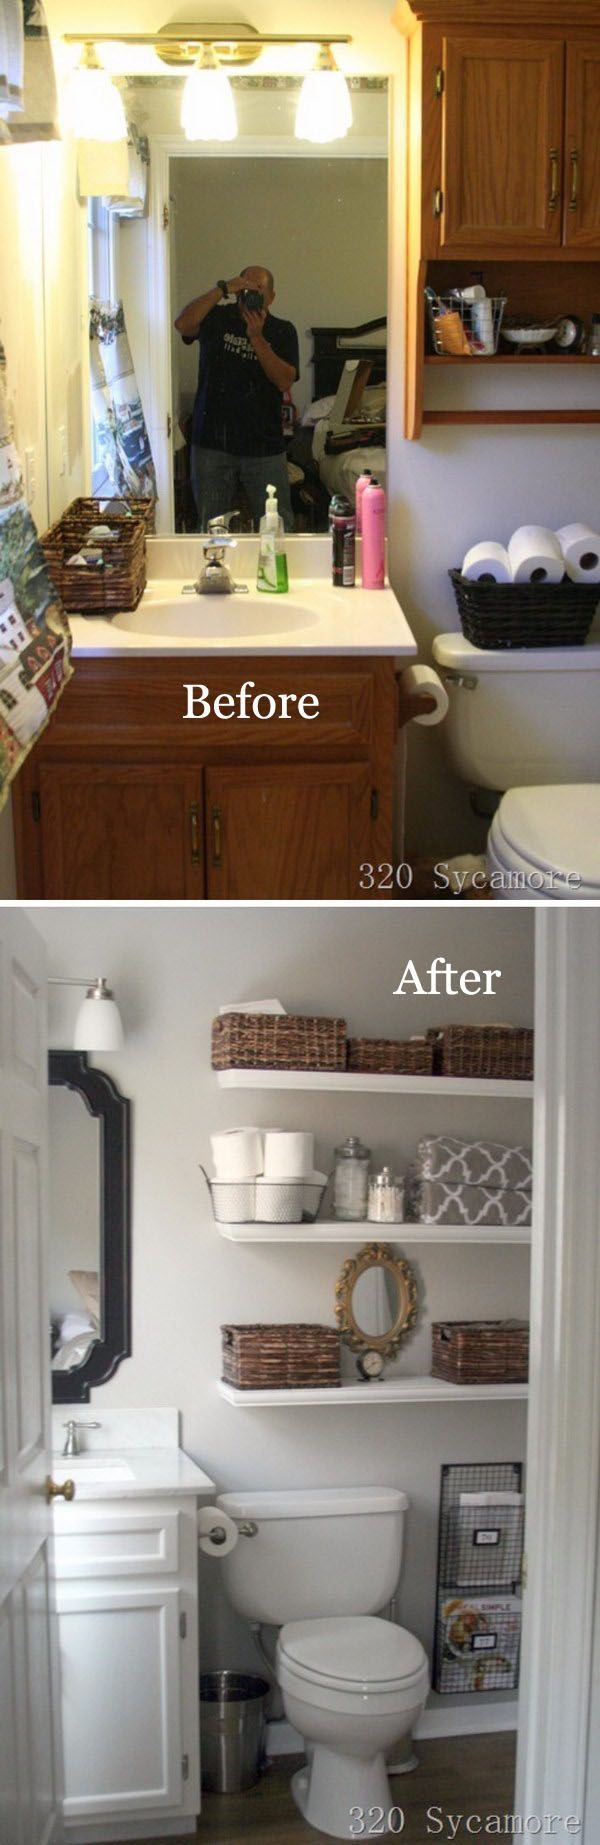 Design Small Bathroom Storage Ideas best 25 small bathroom storage ideas on pinterest before and after 20 awesome makeovers